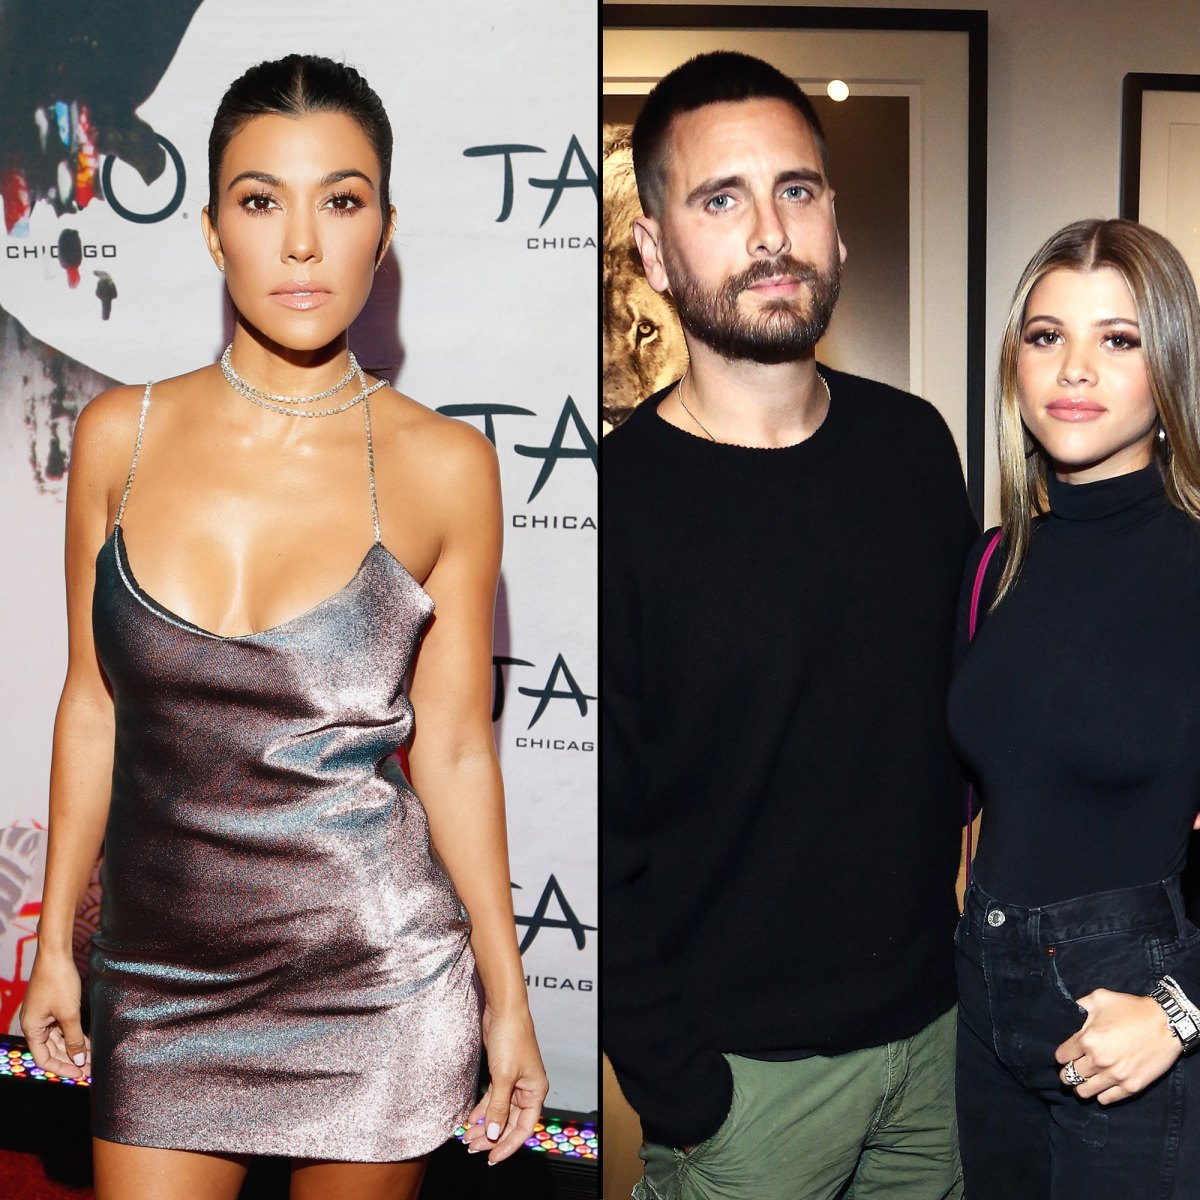 Kourtney Kardashian Is in 'Better Space' With Scott Disick, Sofia Richie